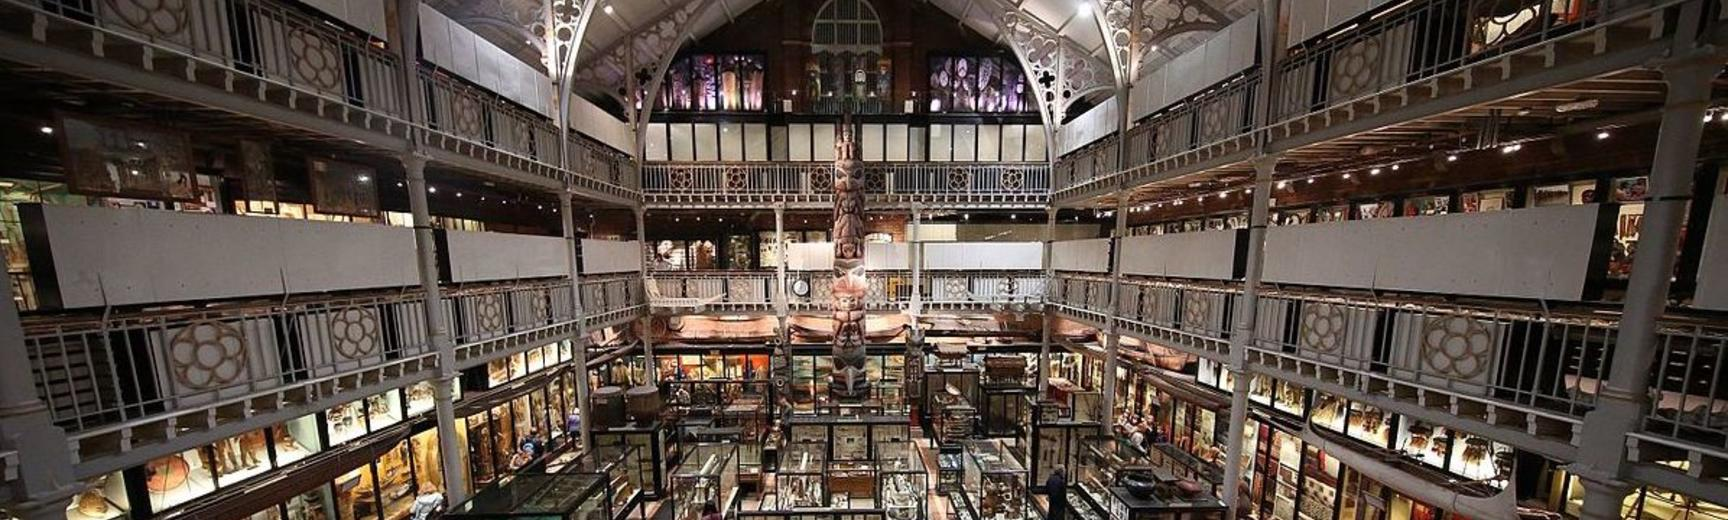 pitt rivers museum profile picture